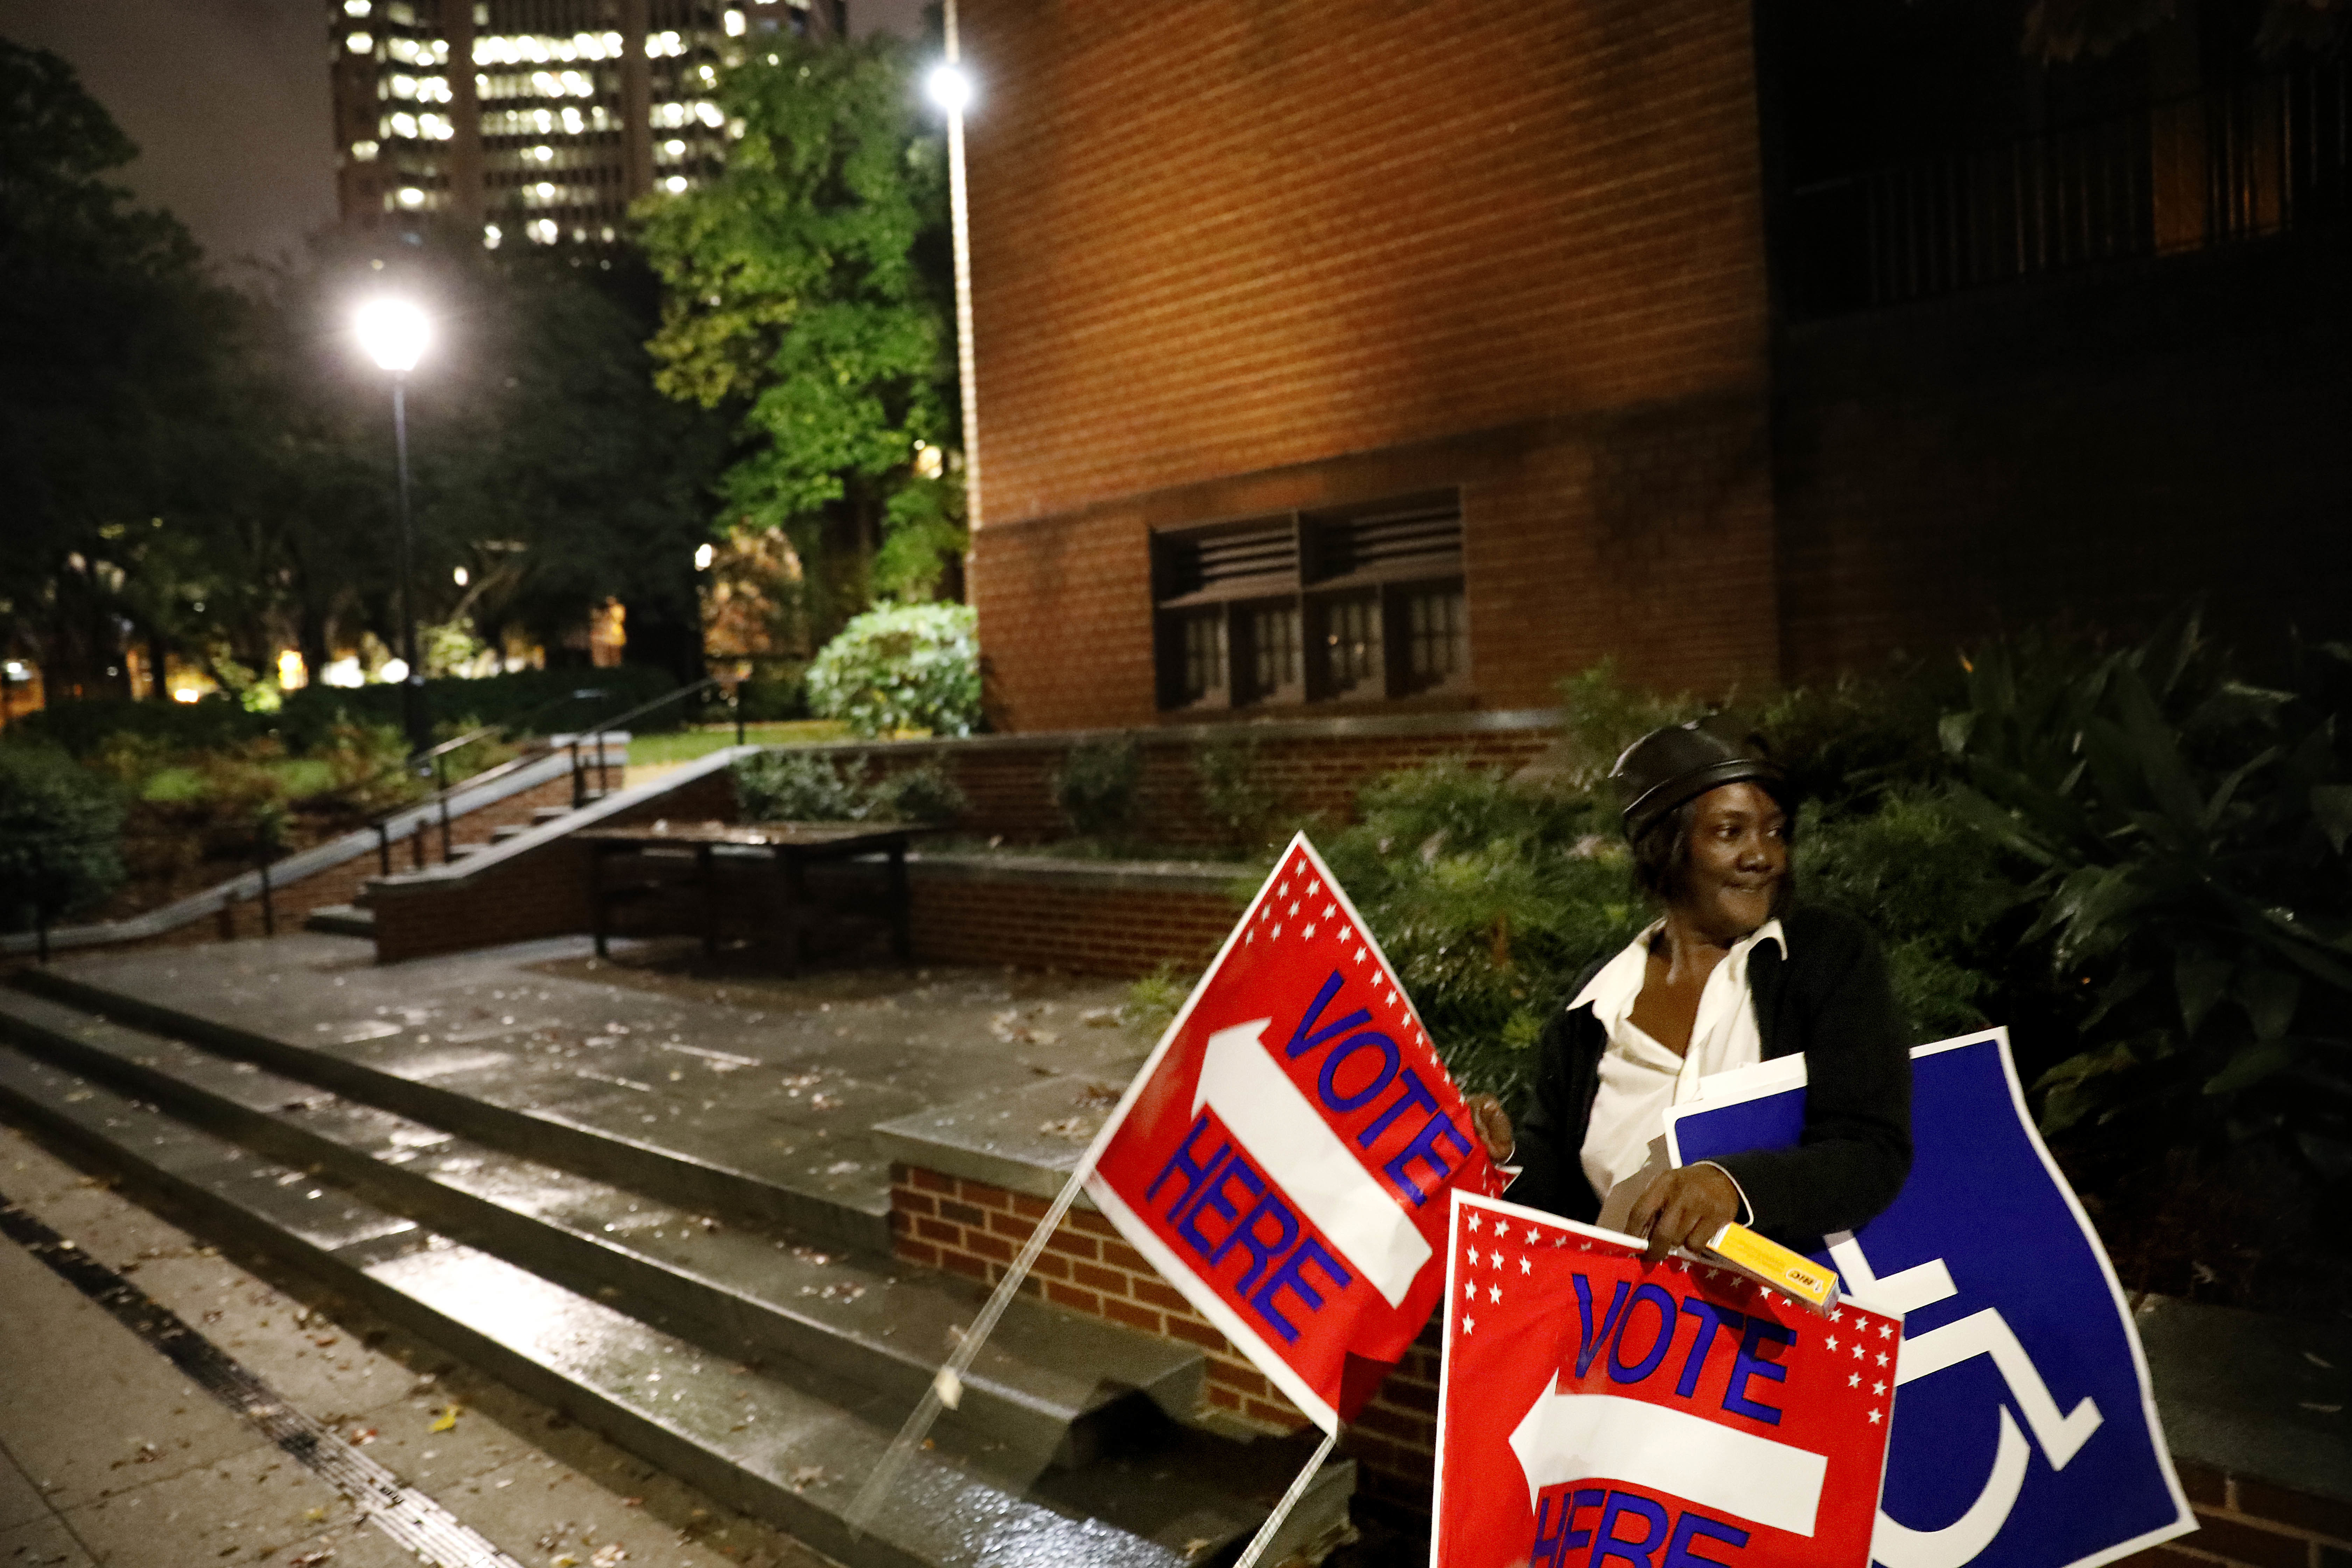 Poll worker Sarah Thomas places signs outside a precinct before polls open on election day in Atlanta, Nov. 6, 2018.